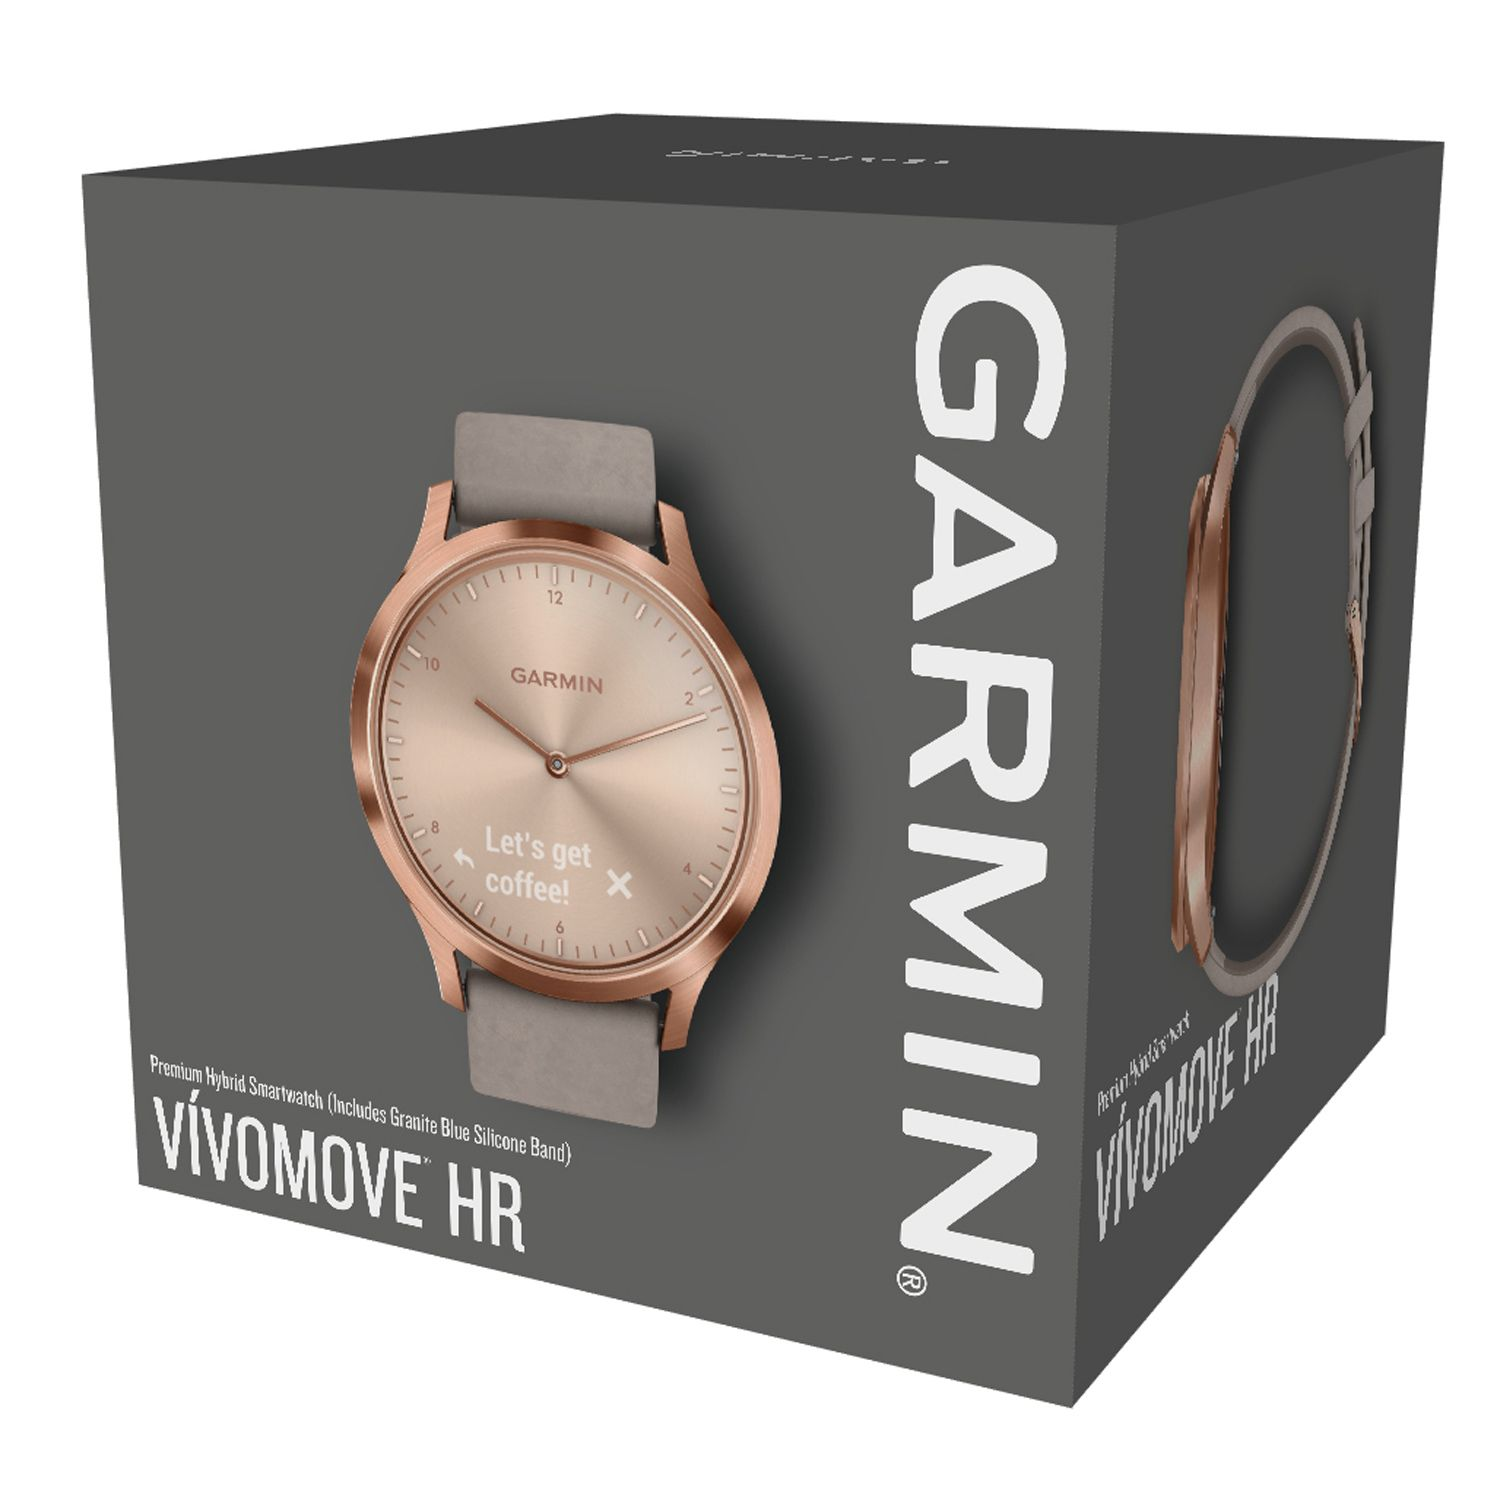 Garmin vivomove HR Rose Gold Smartwatch - 010-01850-19 5b22cb265c9